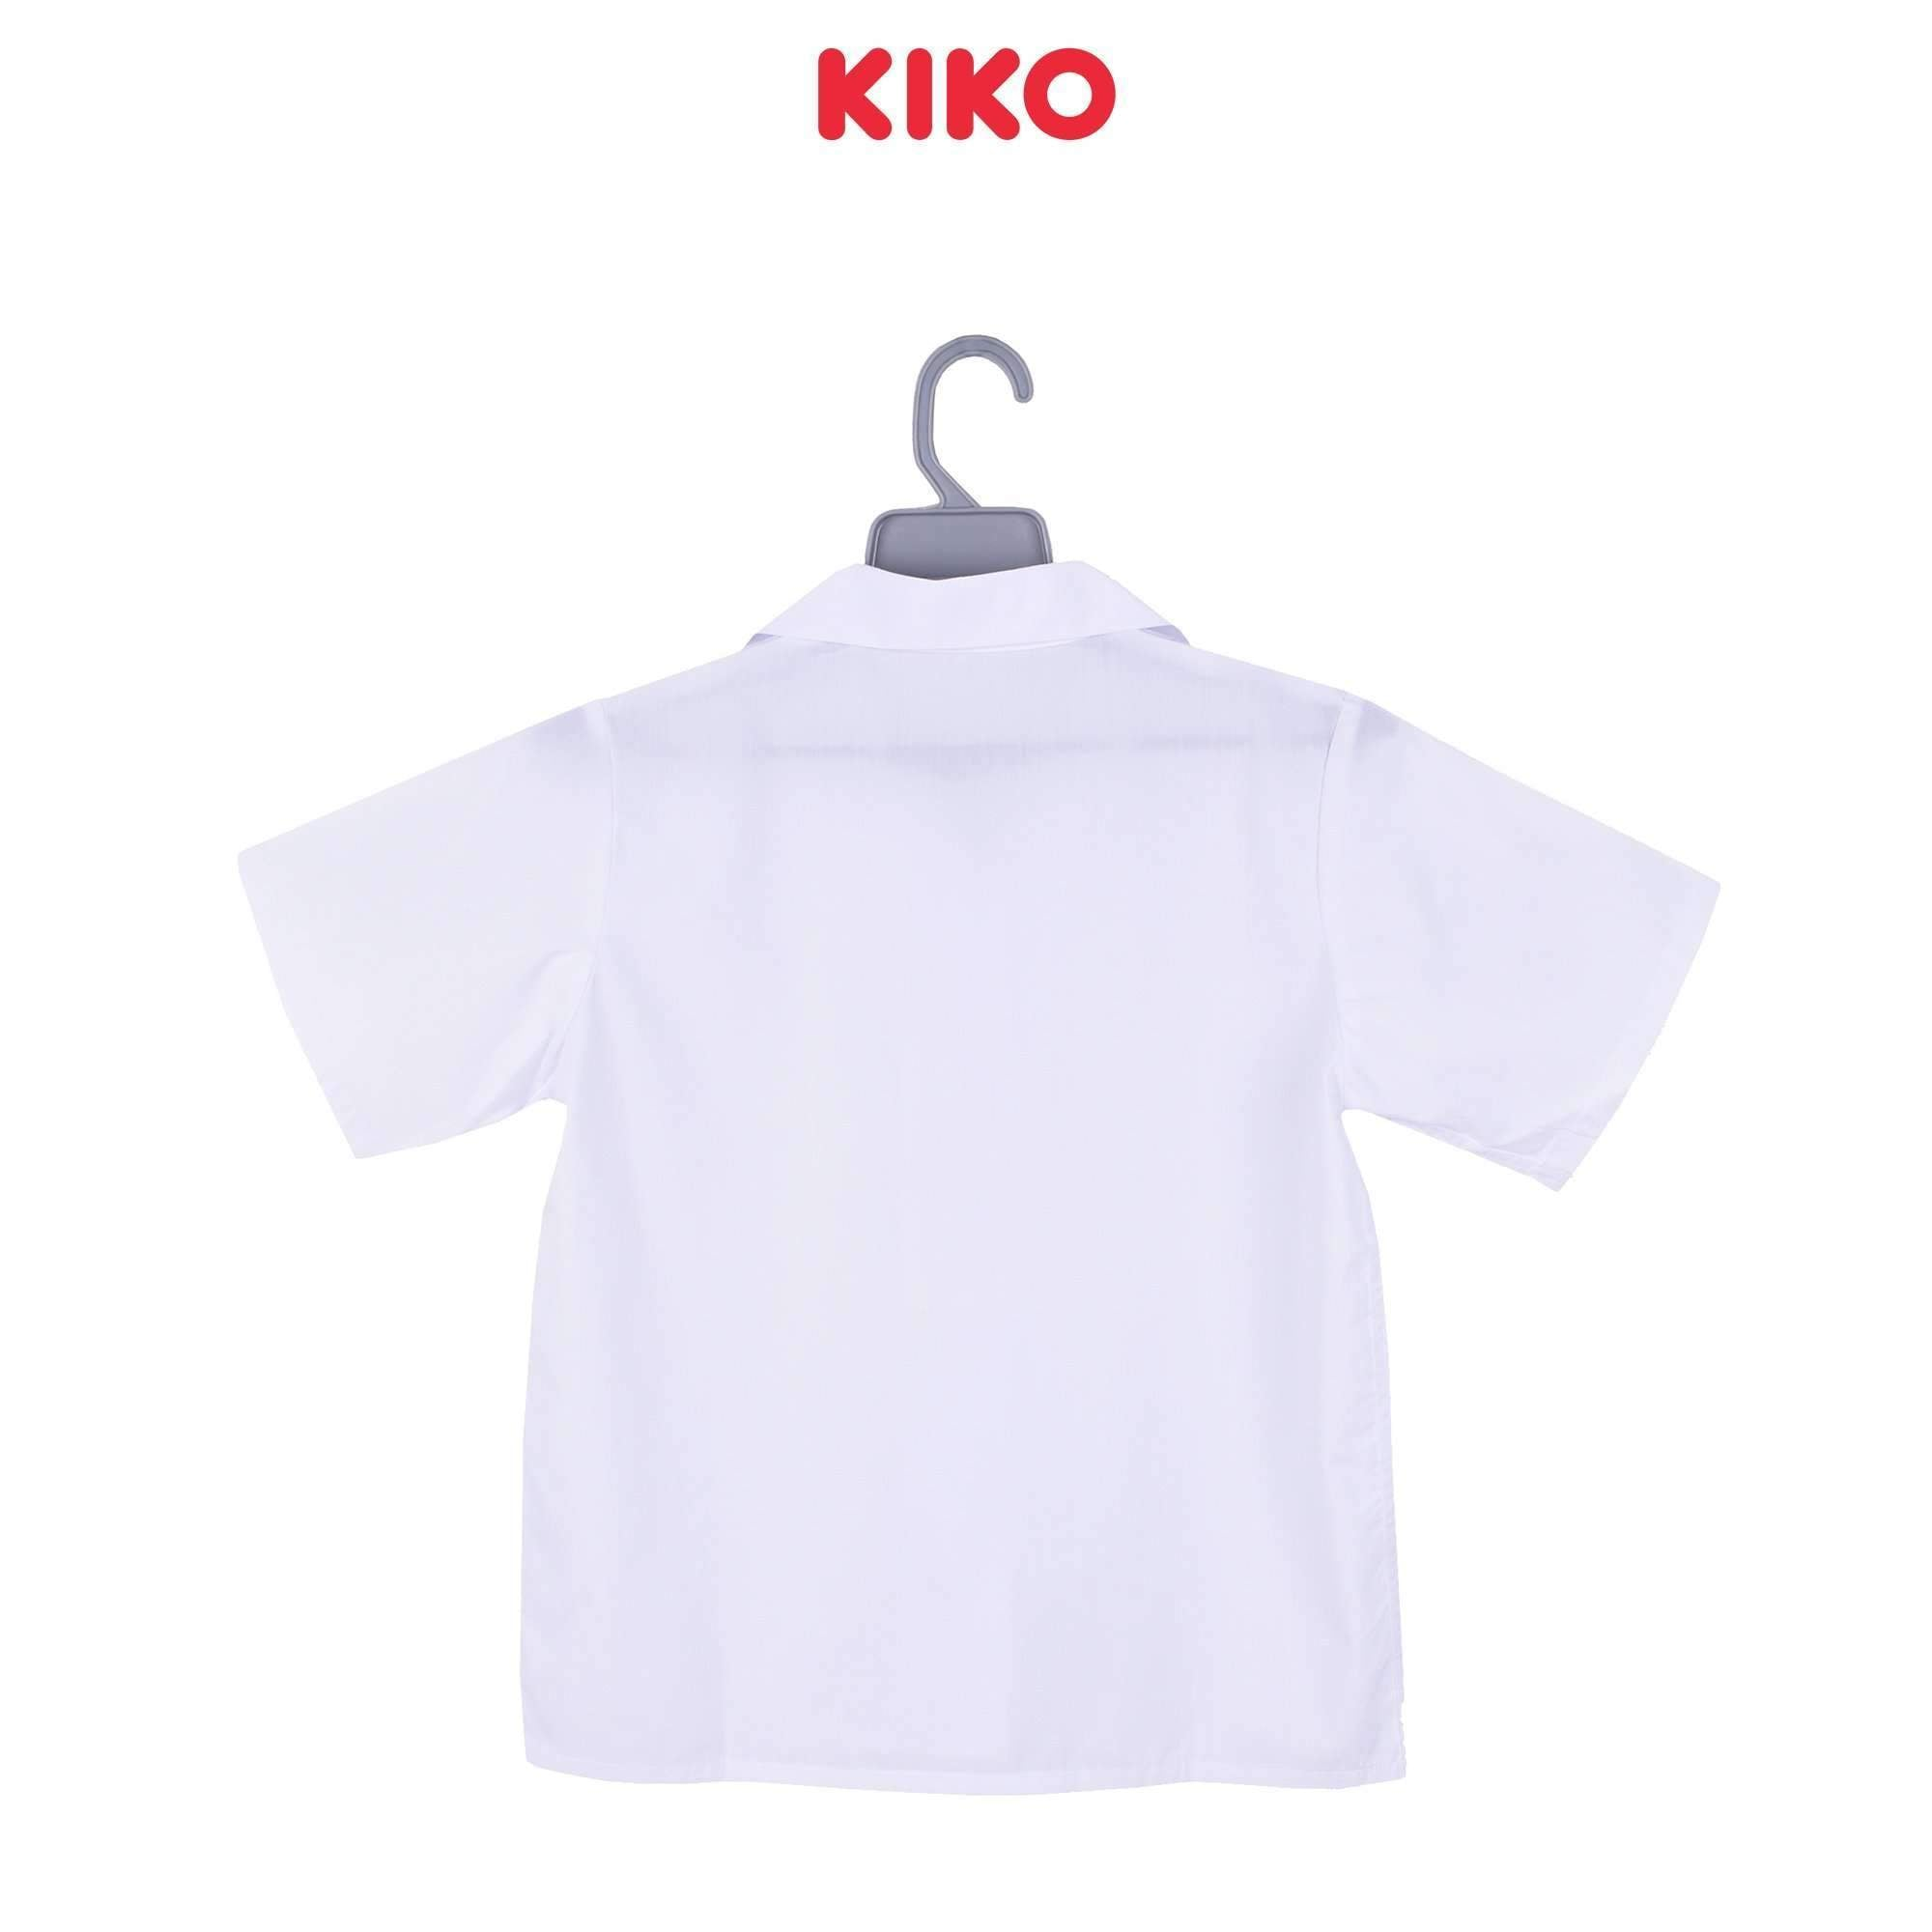 K-Primary Boy Short Sleeve Shirt School Uniform Primary - White 121033-14X : Buy K-Primary online at CMG.MY